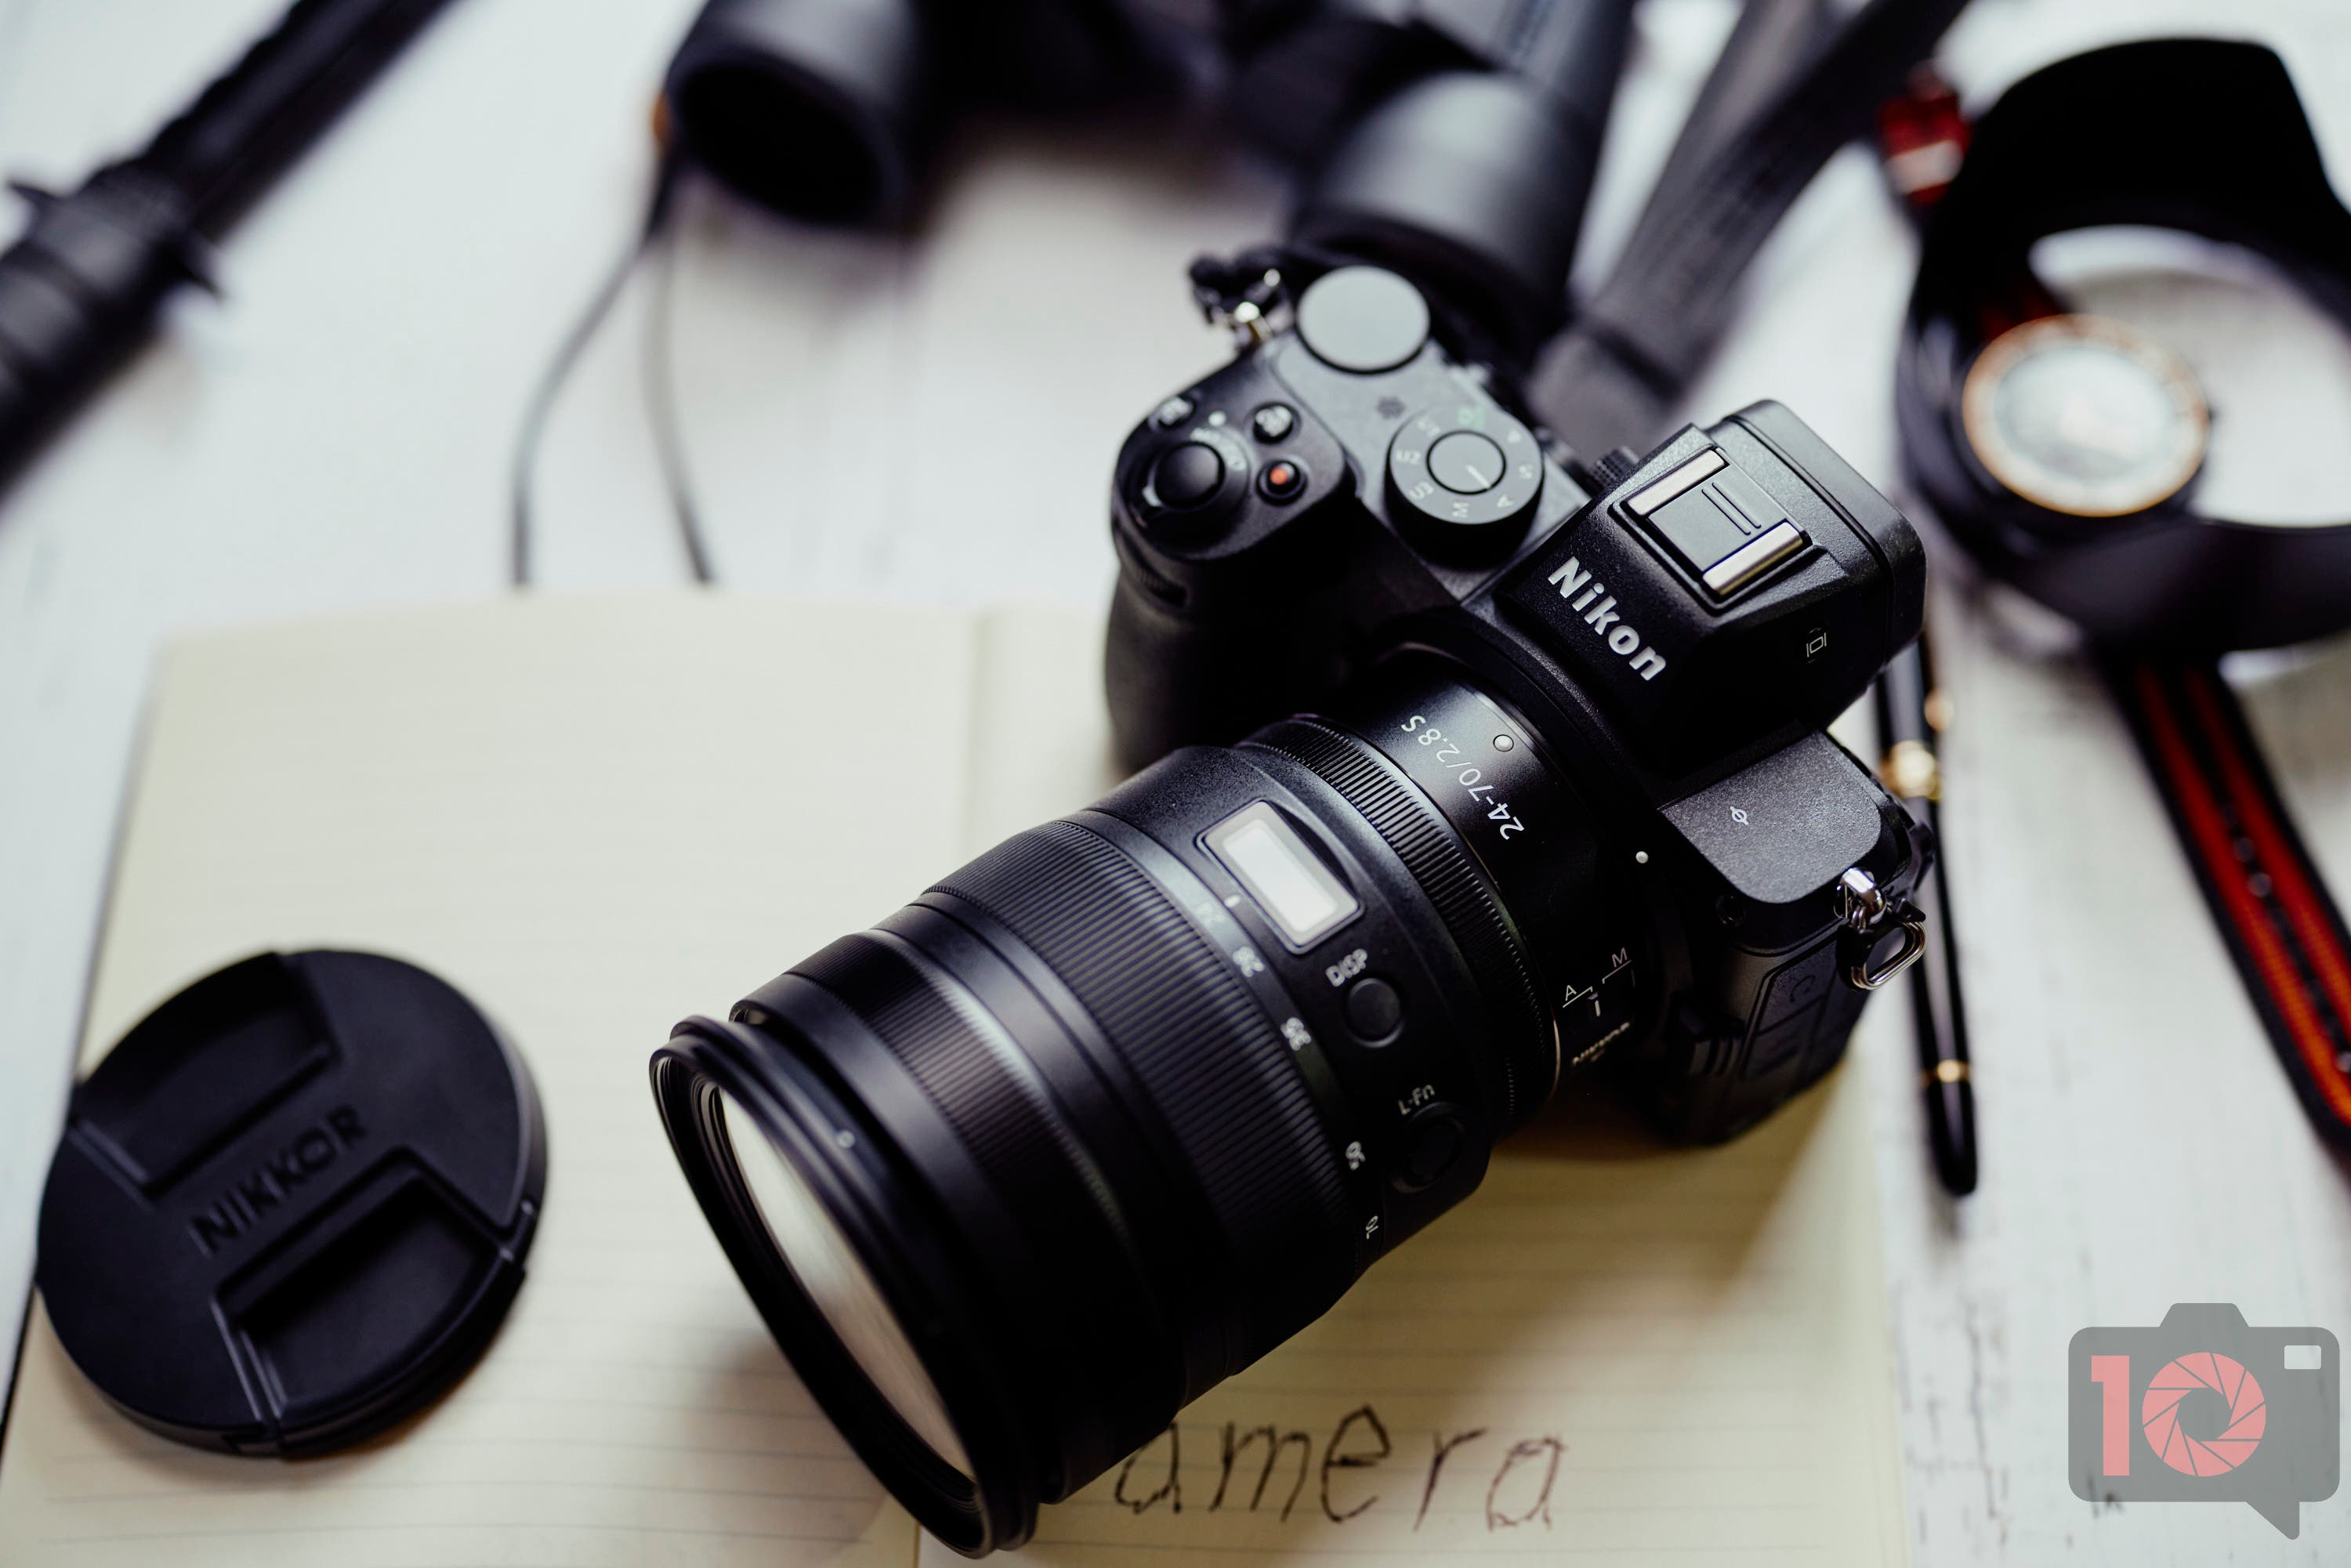 Pair the Nikon Z5 with This Lens for Great Images